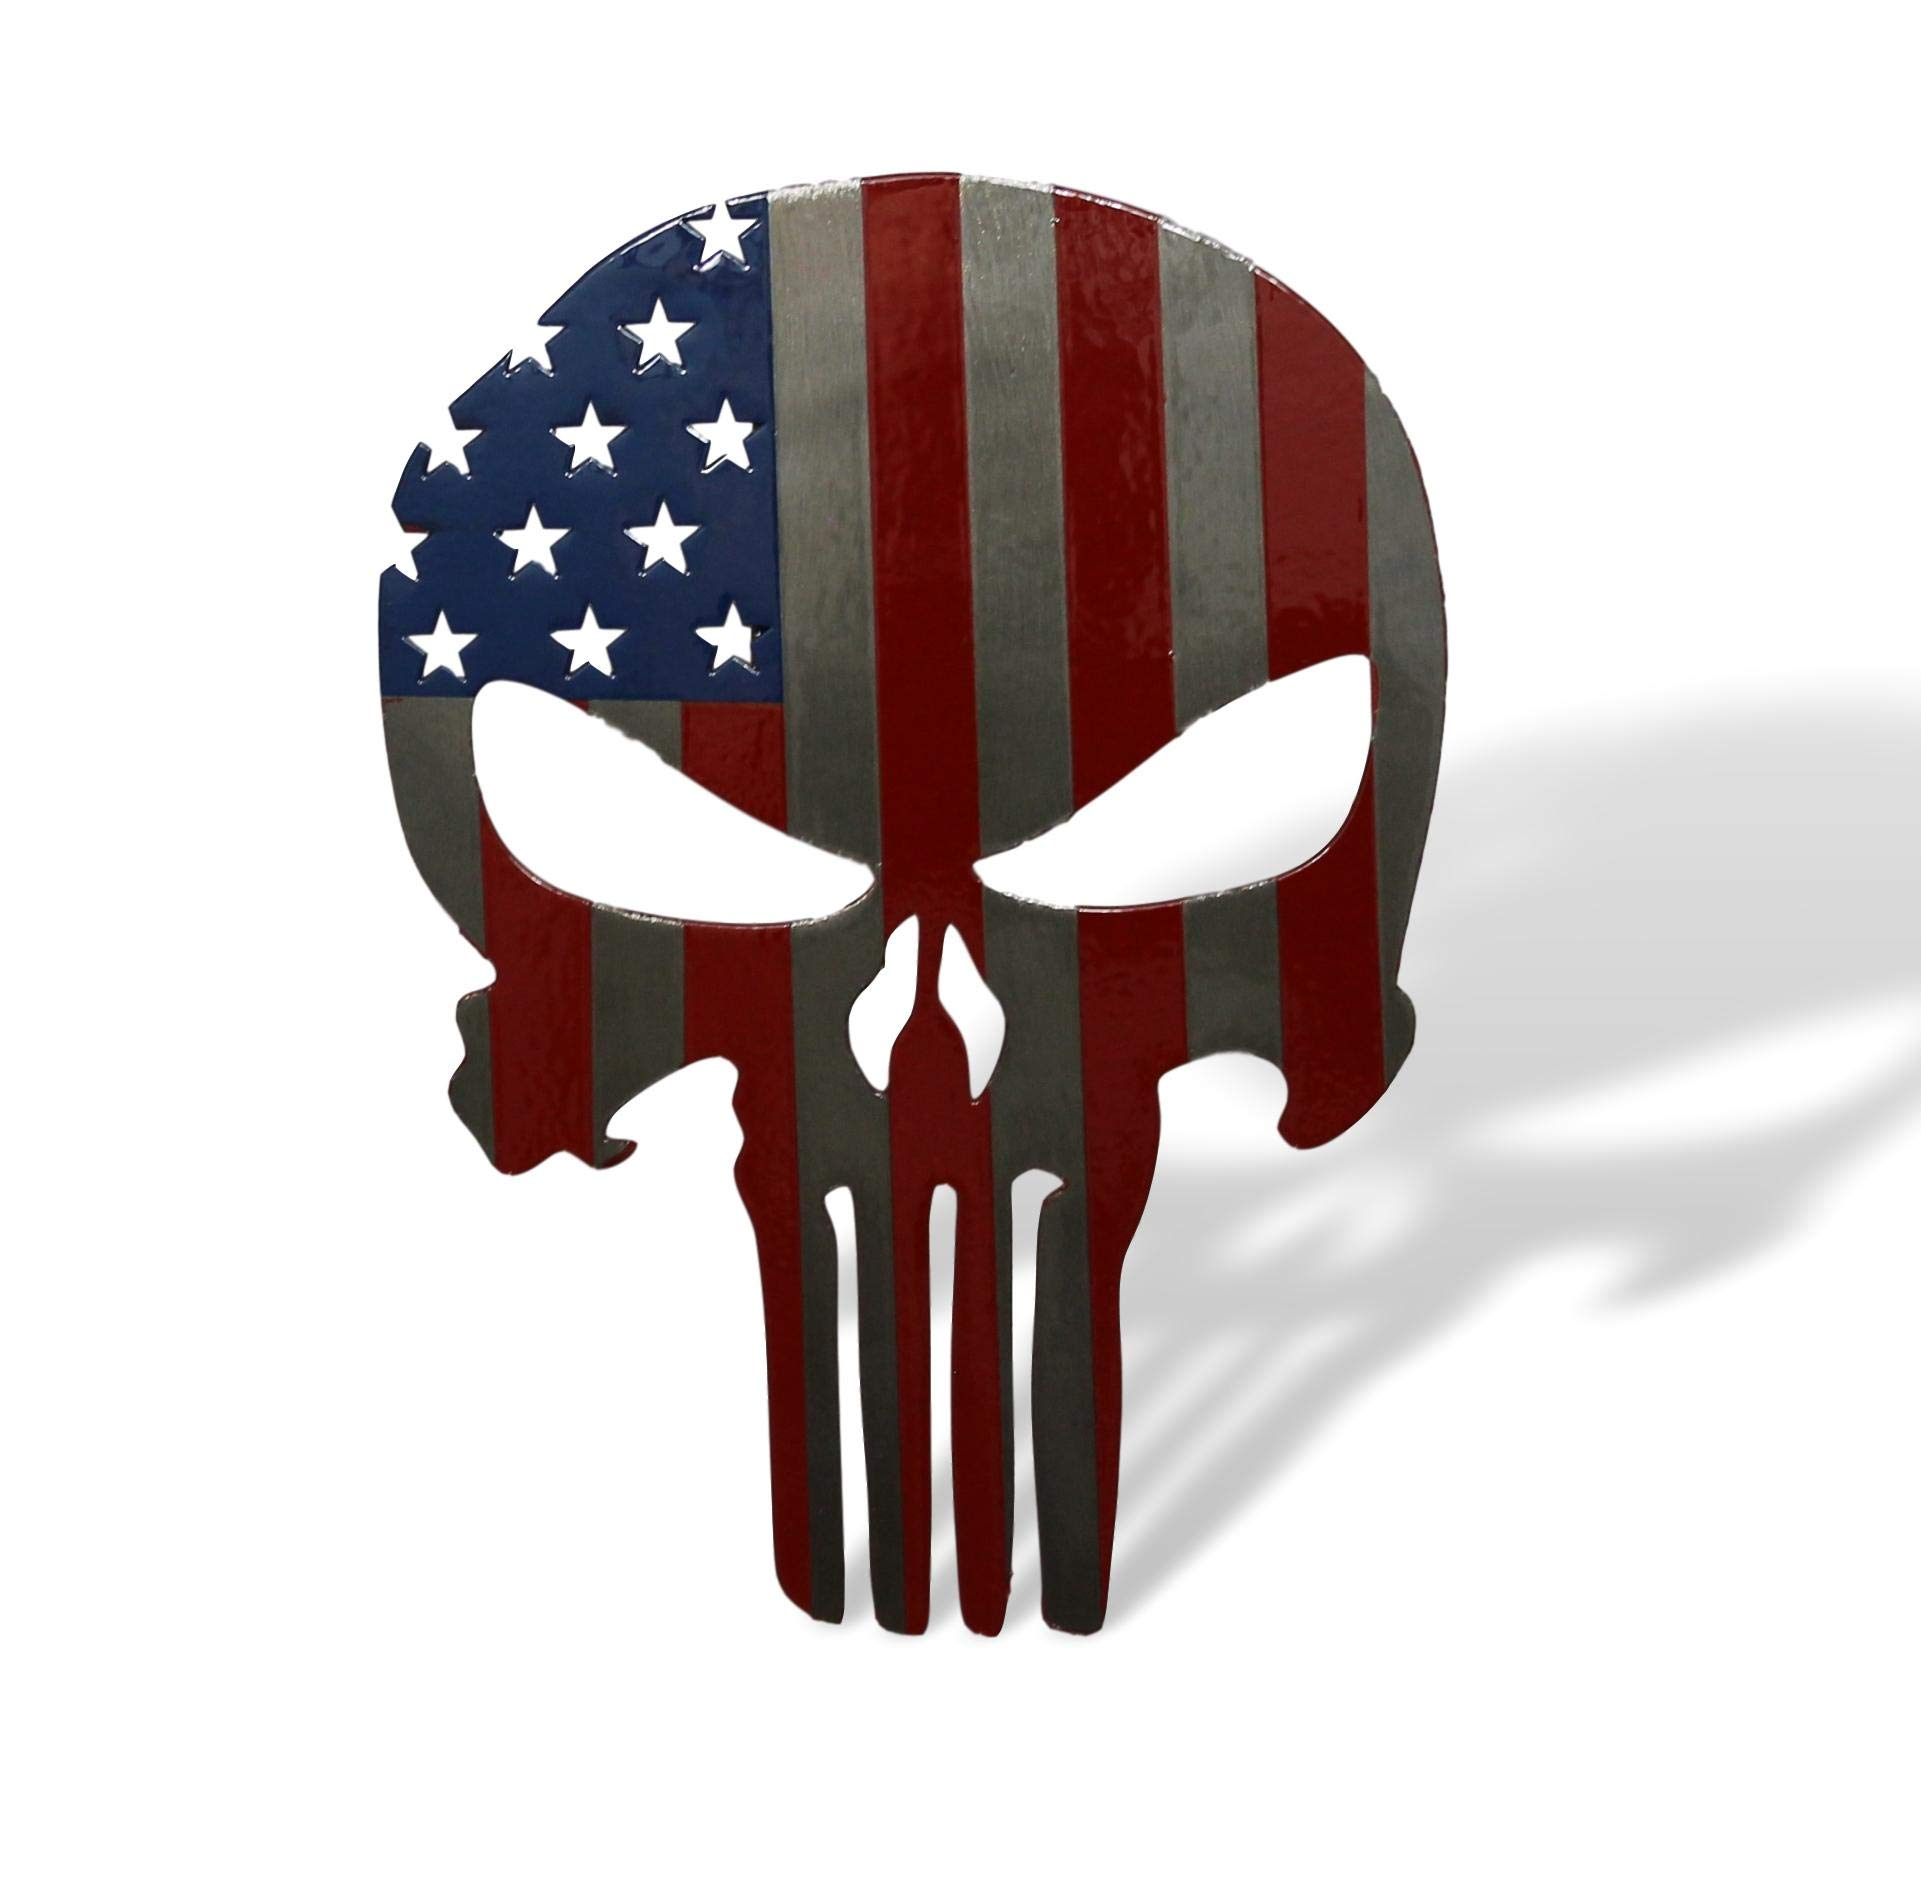 Fox MetalFab Powder Coated Steel Punisher Trailer Hitch Cover/Insert (American Flag) by Fox MetalFab